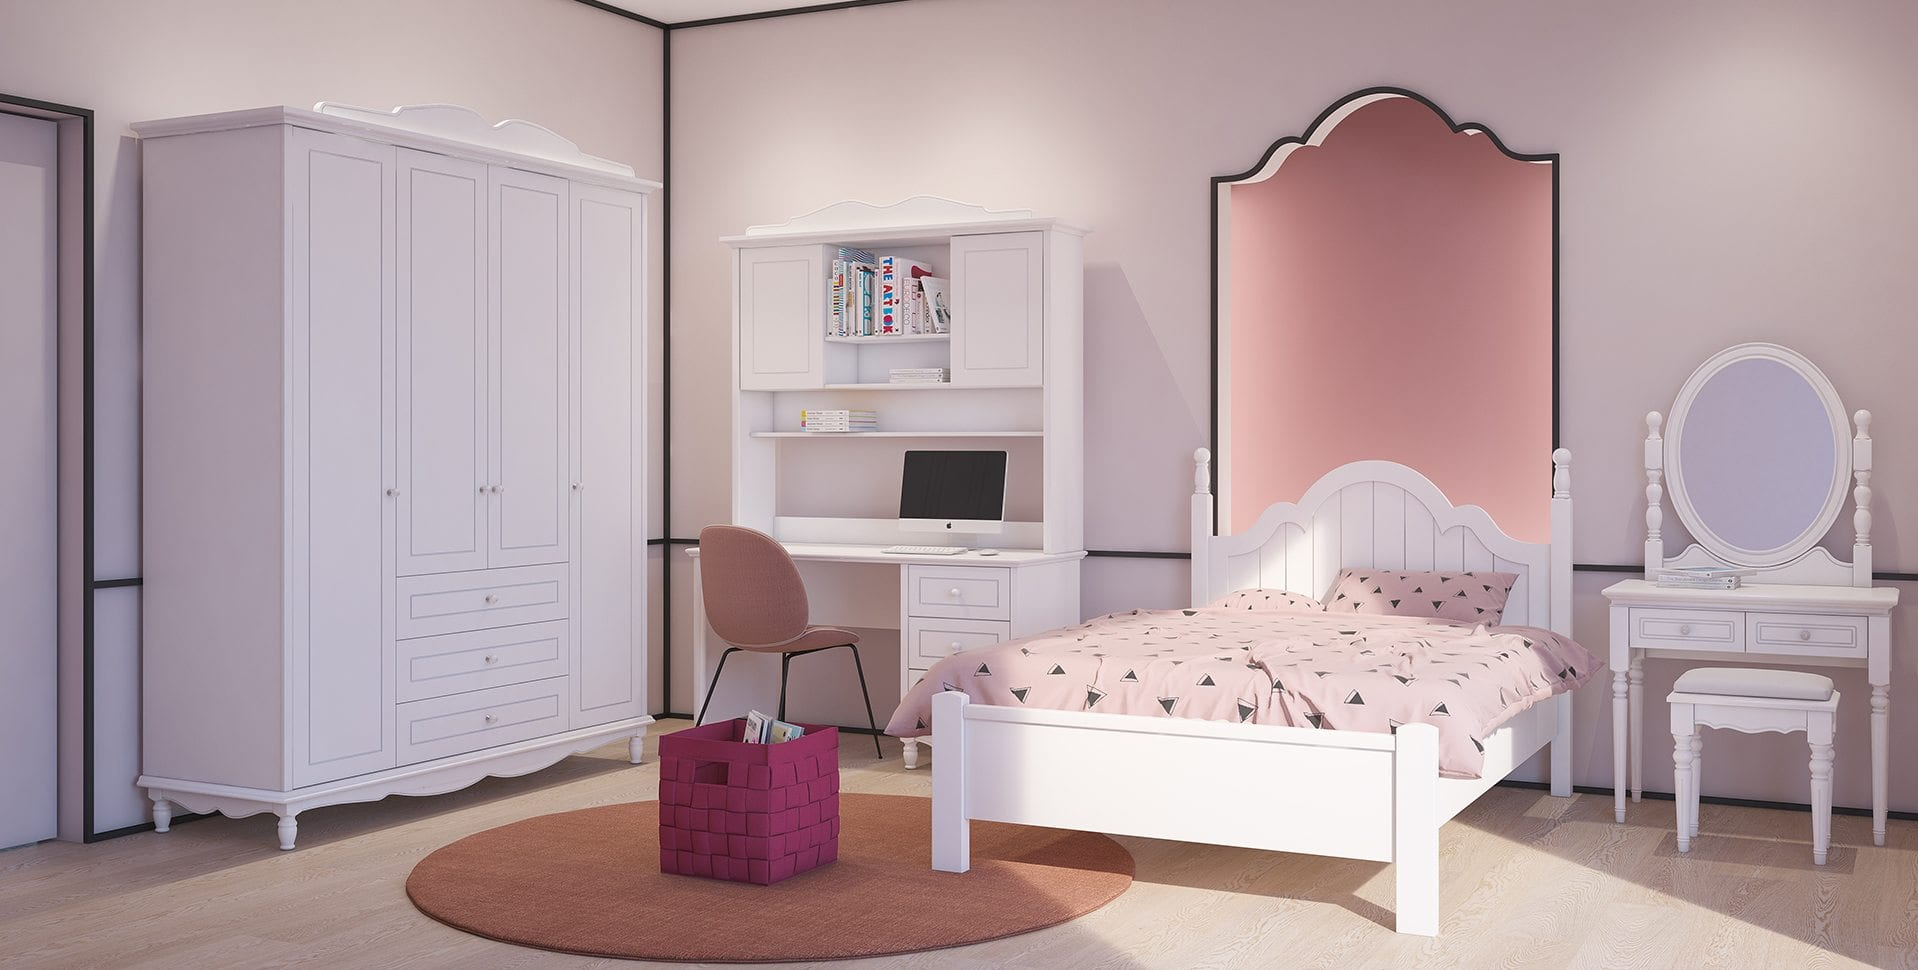 Maayan-Golan_Architectural-Visualization_product-visualization_childrens-furniture_Barzilay_girls-room_02